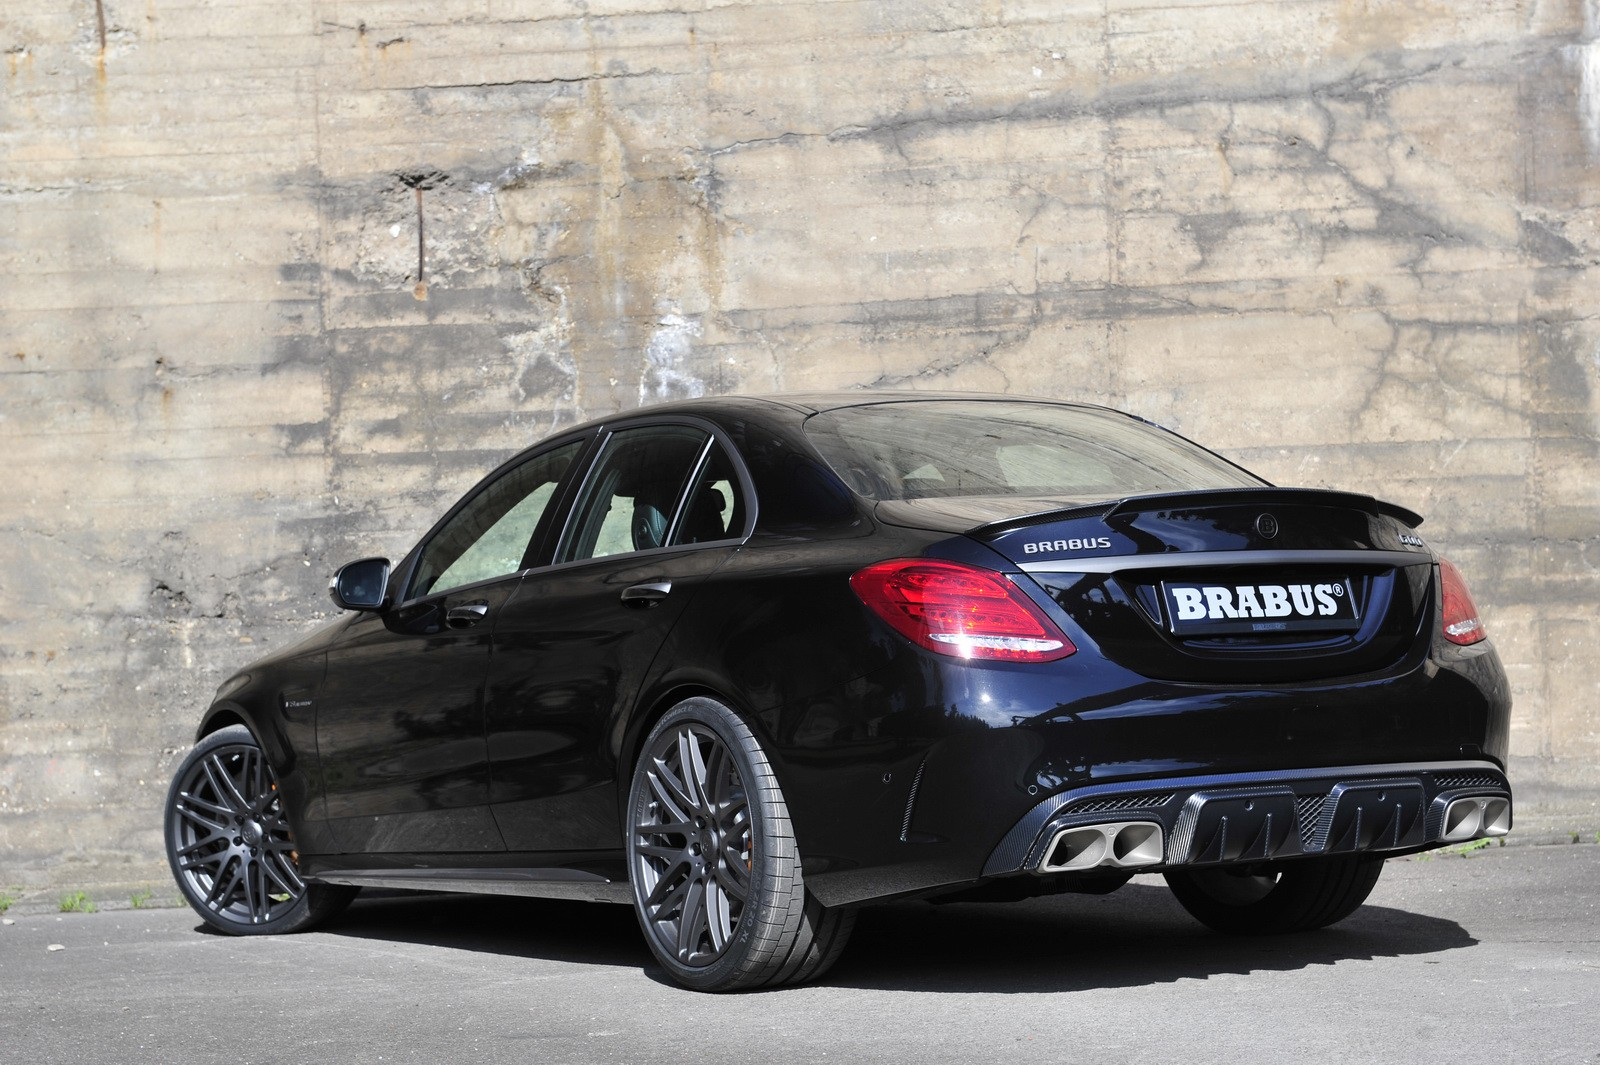 Mercedes benz c63 amg s from brabus vehicles for Mercedes benz c63 amg 2010